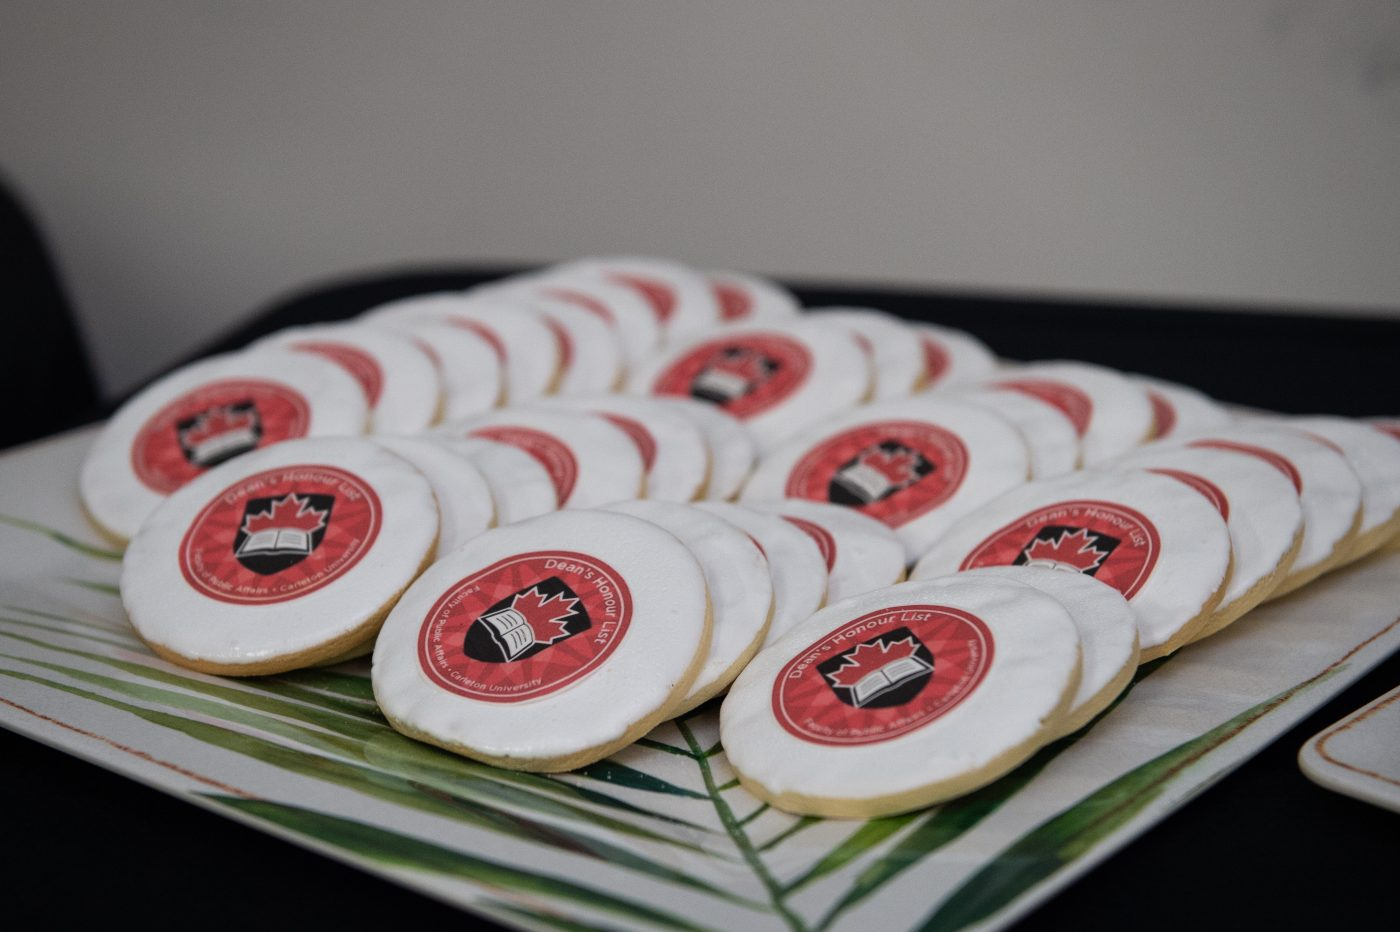 Cookies with the Dean's honour's list crest